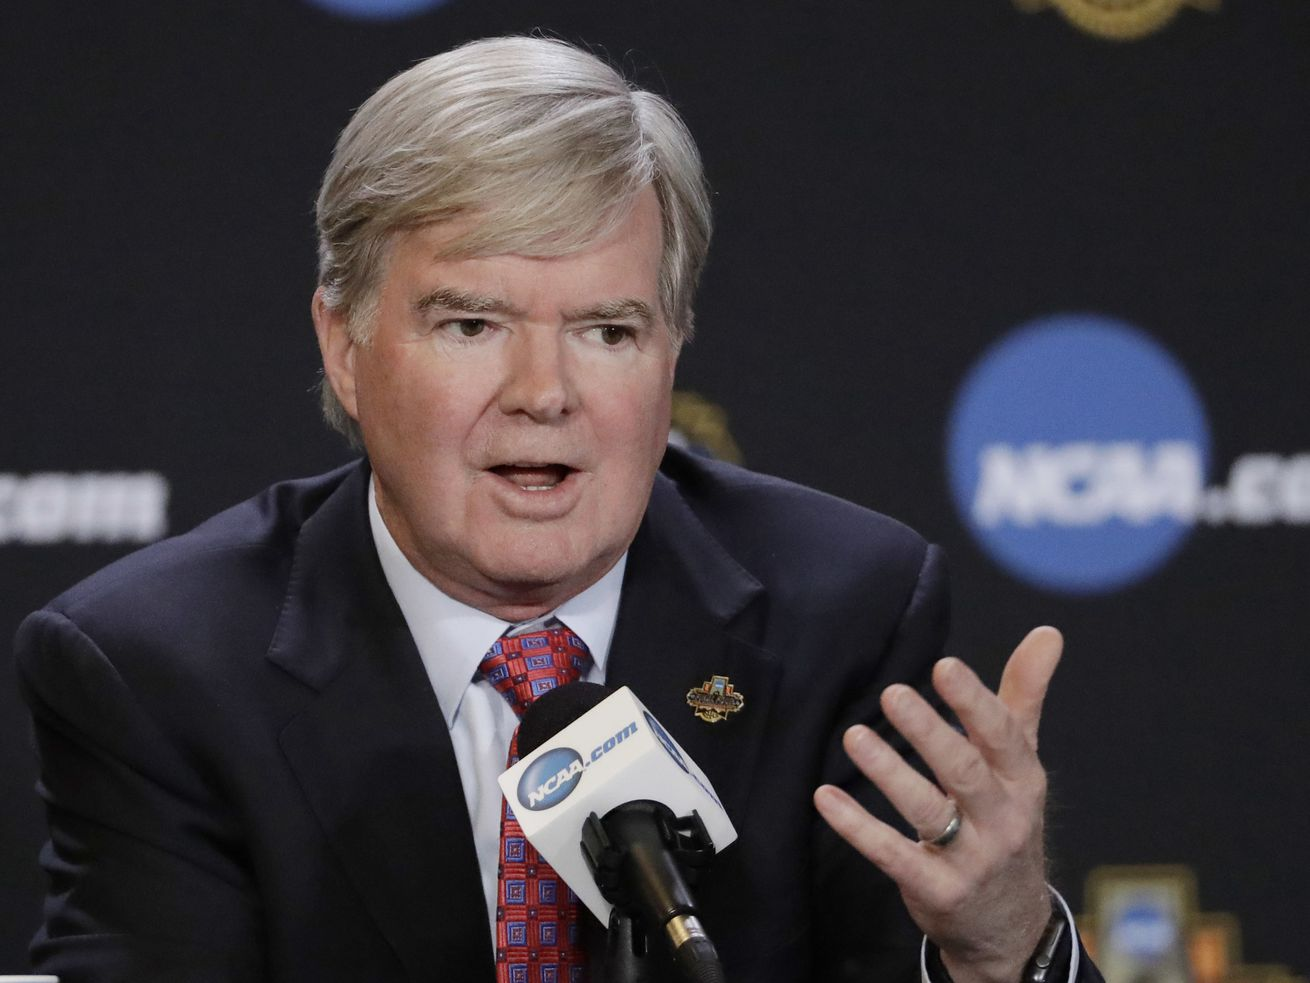 NCAA president Mark Emmert likes to say the governing body is about education, student-athletes and morality. Don't believe him.